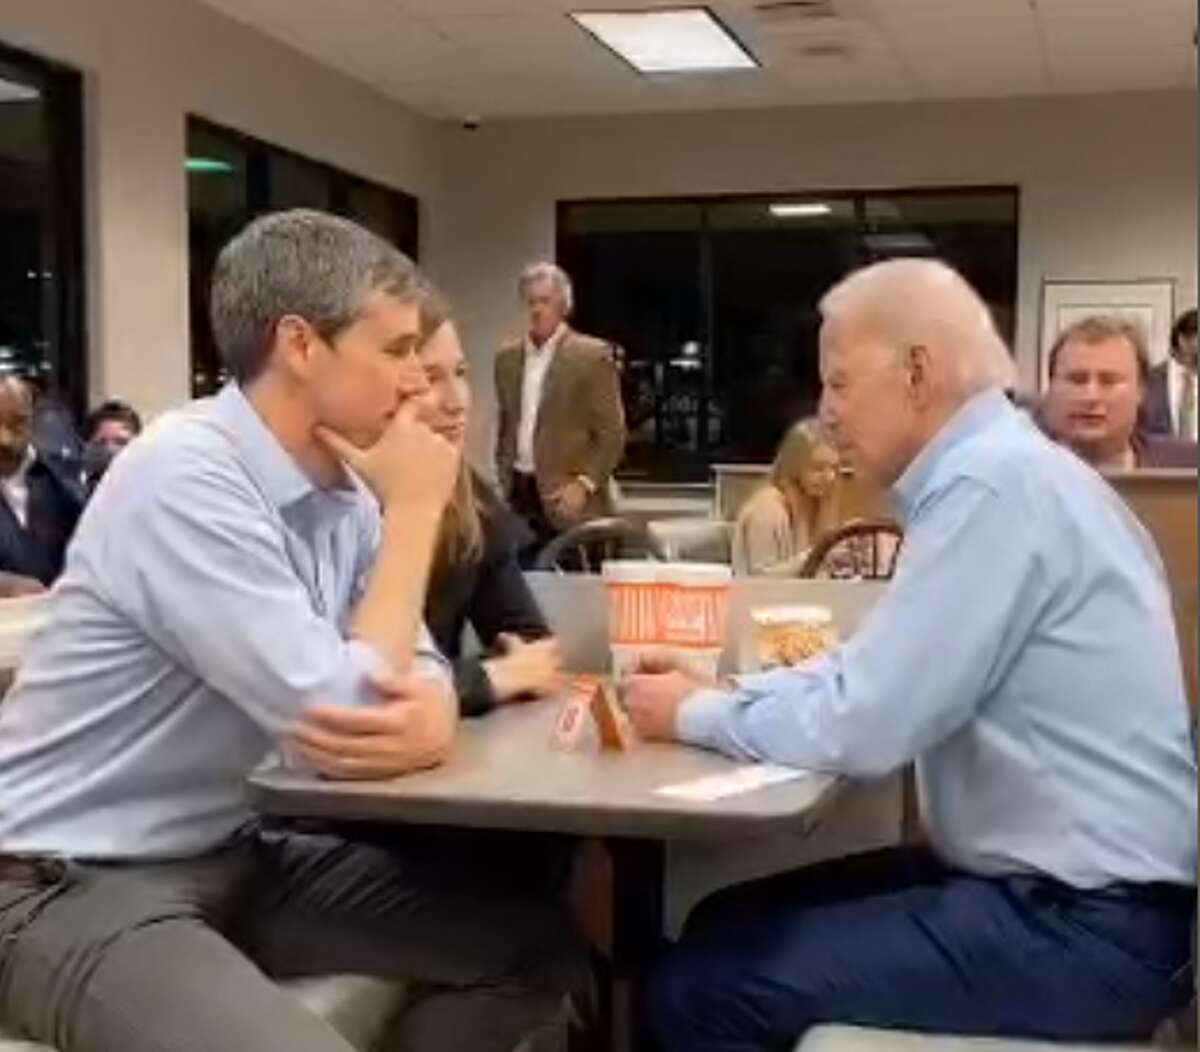 With only one day to pound the pavement before the Super Tuesday primary, Beto O'Rourke took Joe Biden to the one spot in Texas that wiould give him maximum exposure: Whataburger.